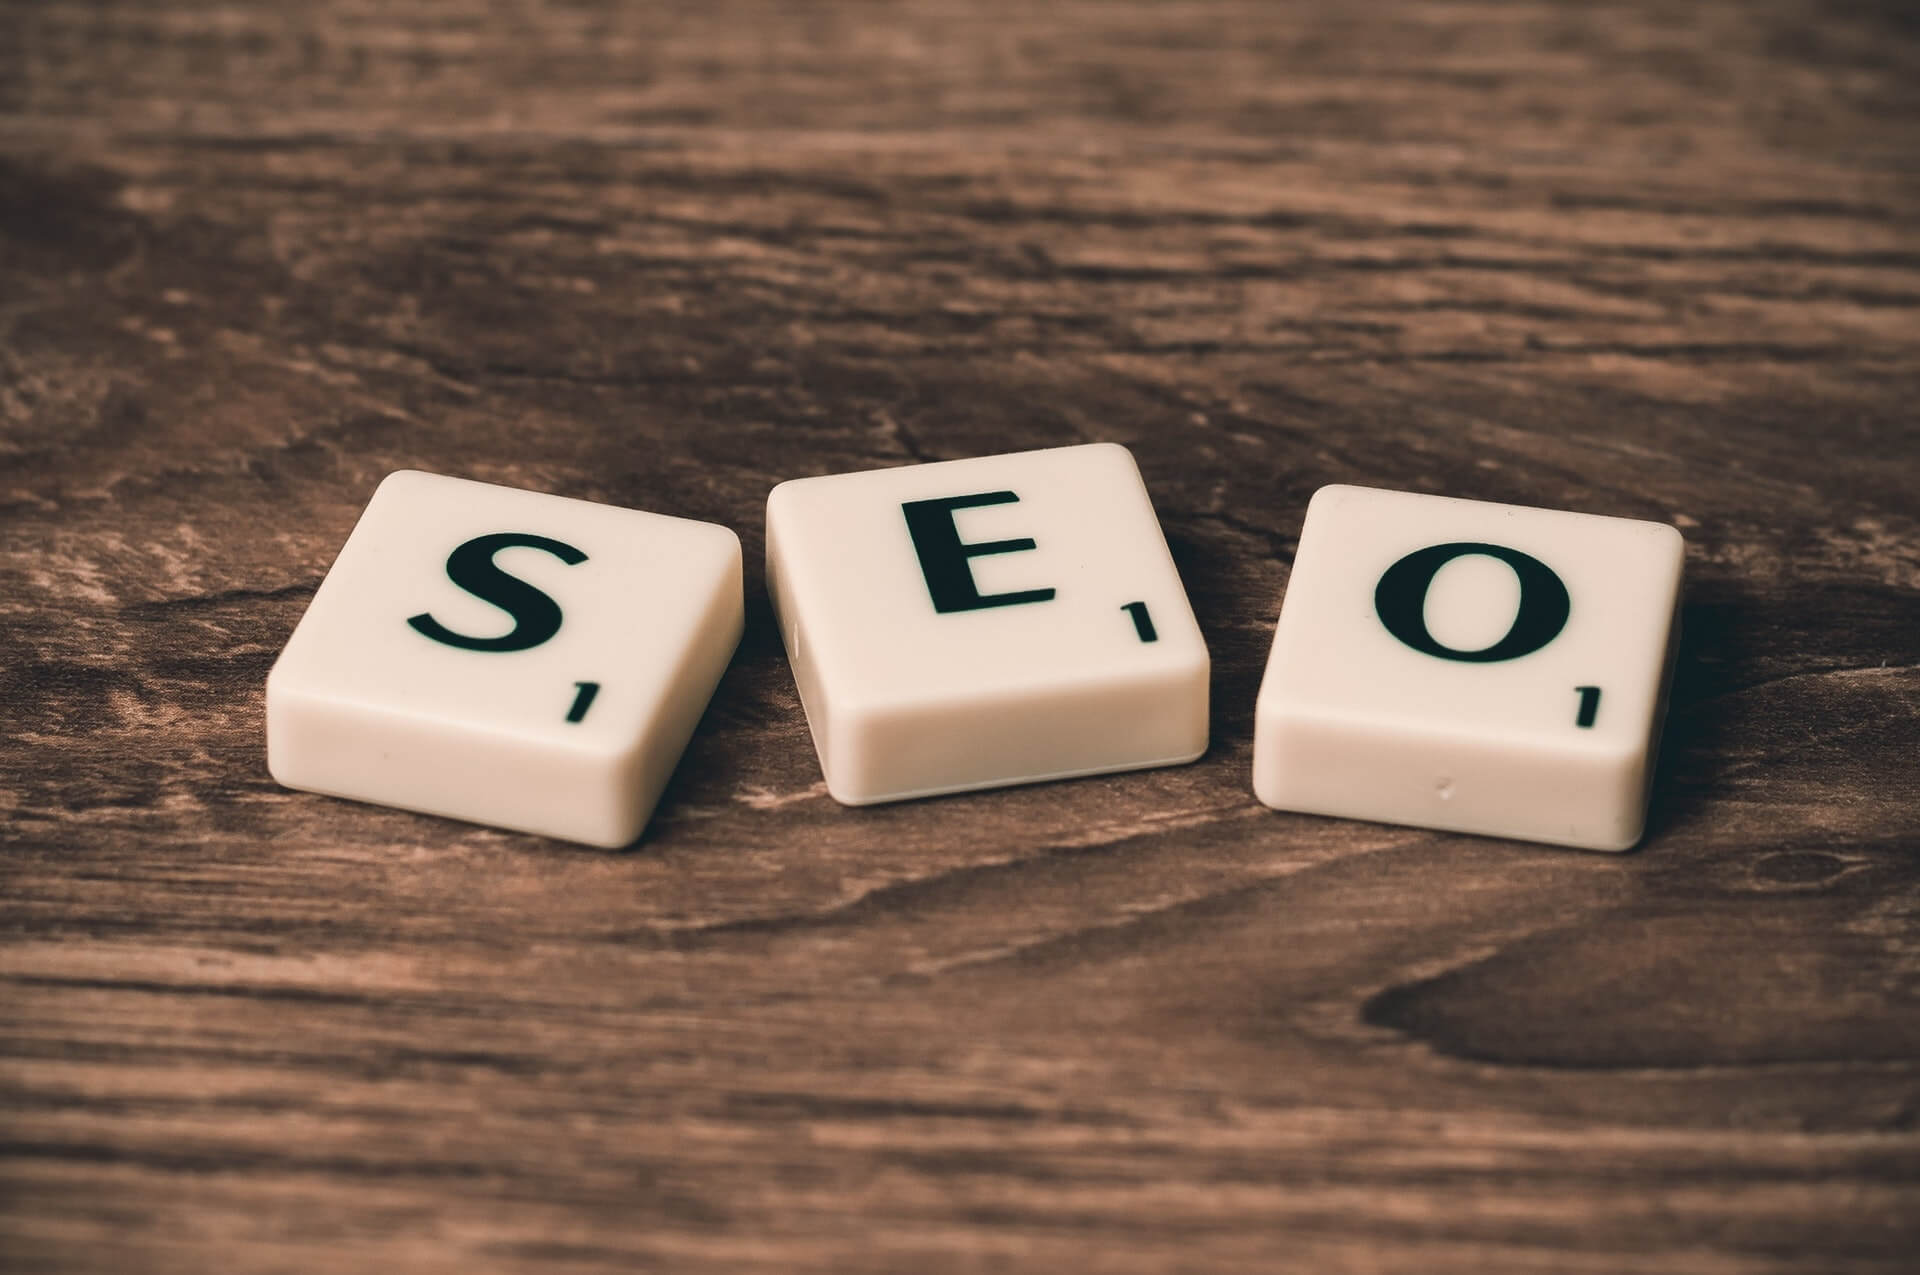 5 seo tips for 2018